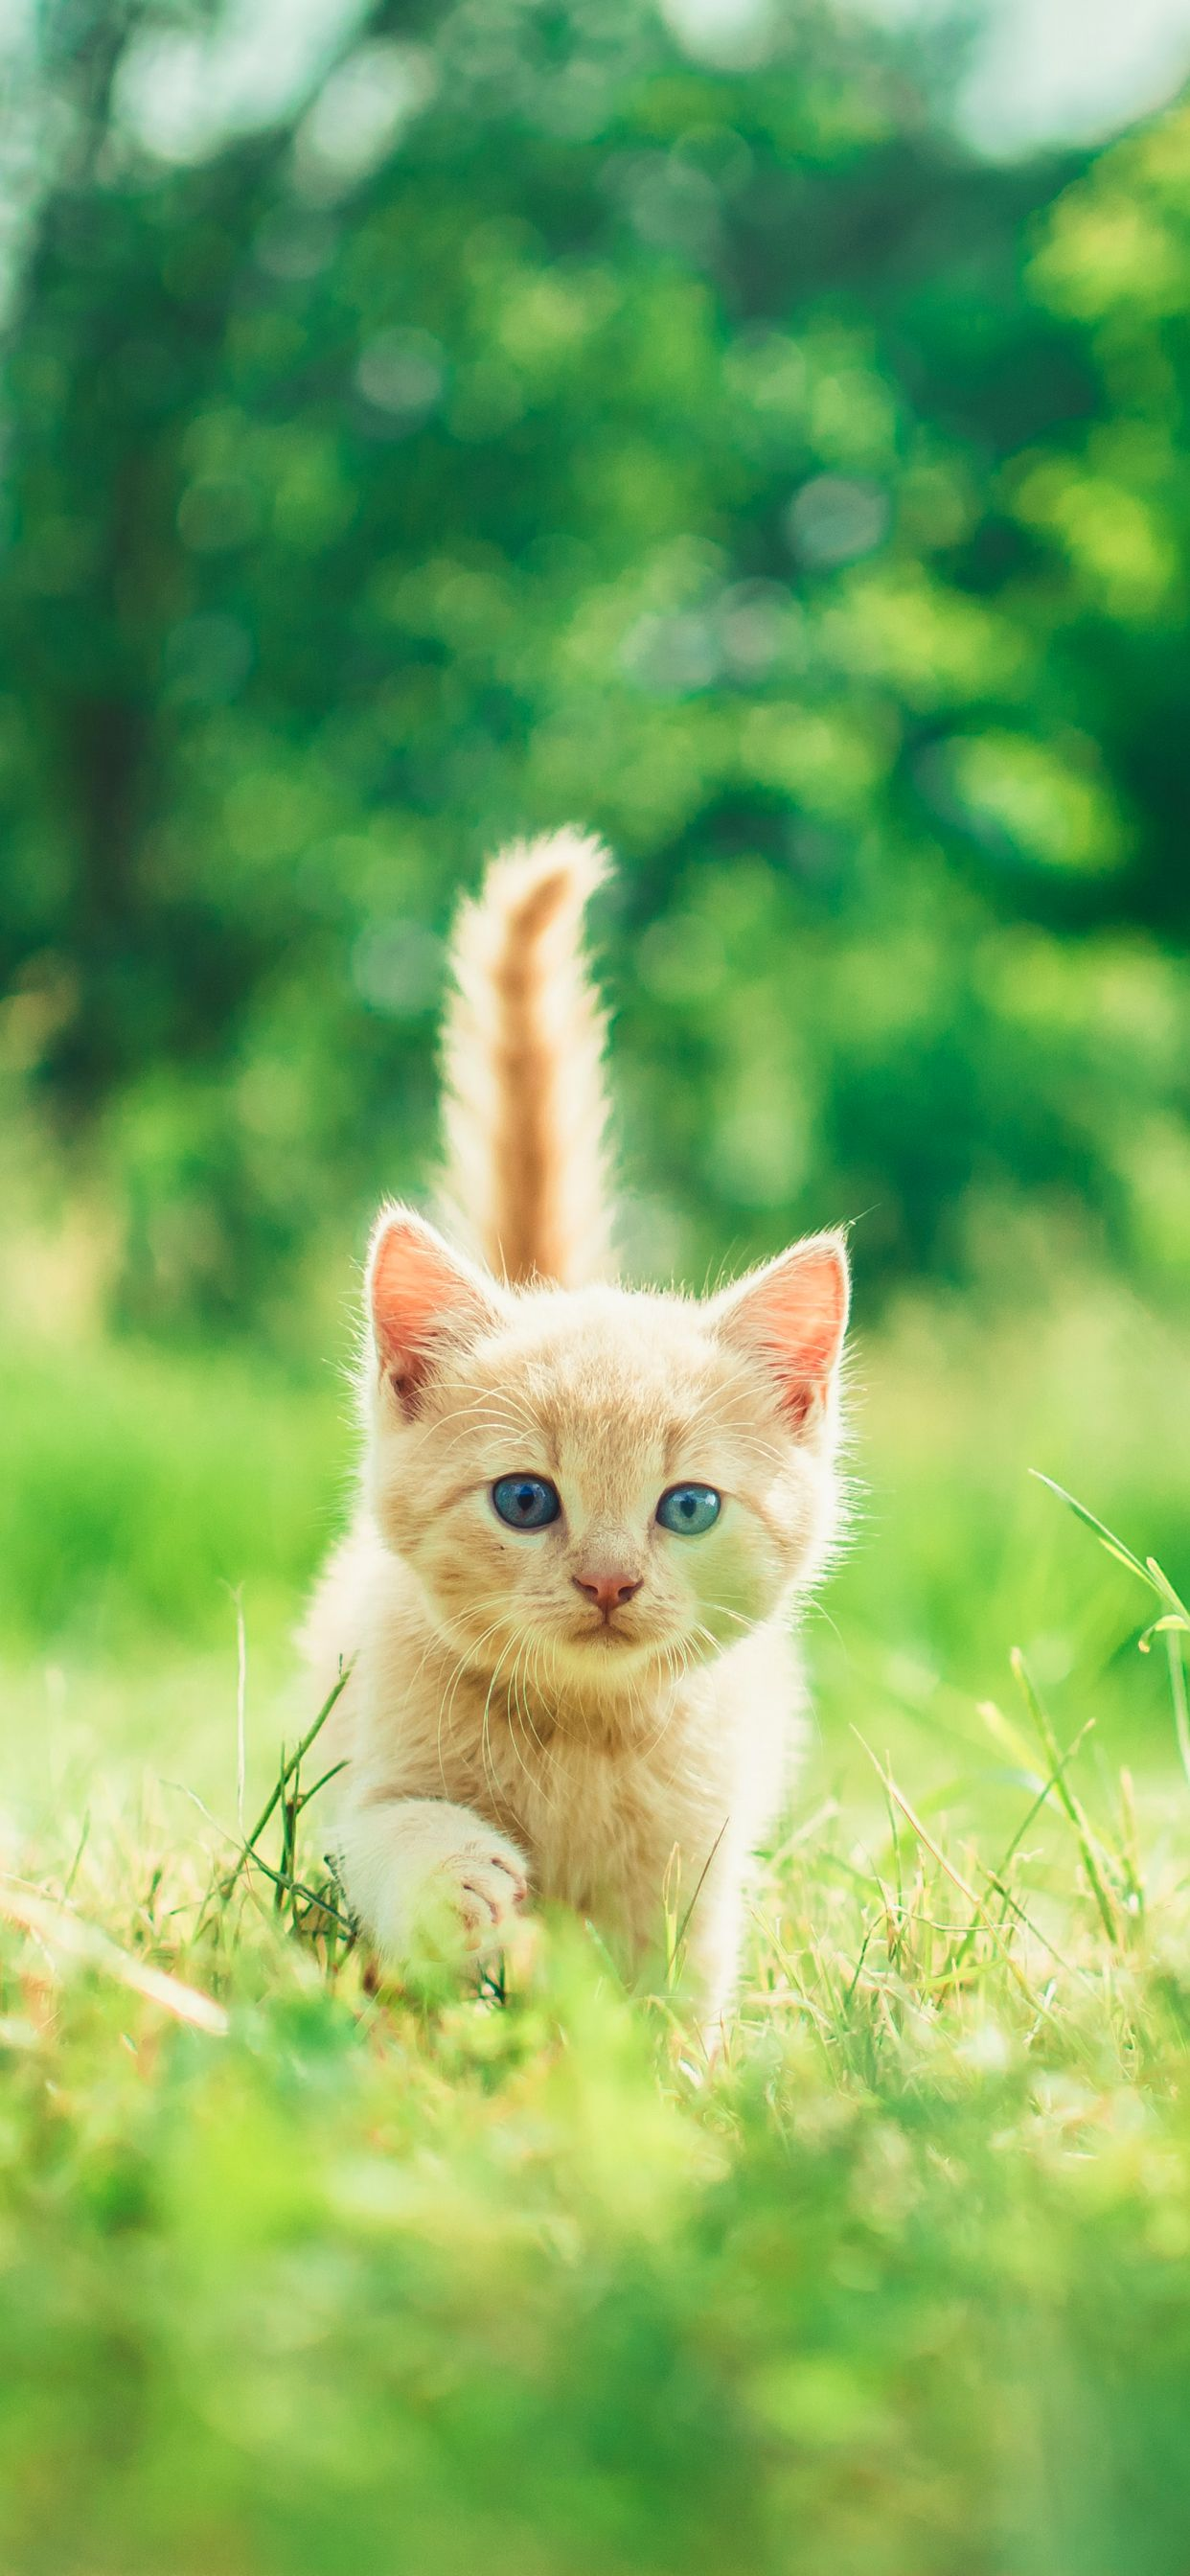 10 Cat Wallpapers For Iphone Xs Max Iphone Xs Iphone Xr Cute Cat Wallpaper Cute Cats And Kittens Kittens Cutest